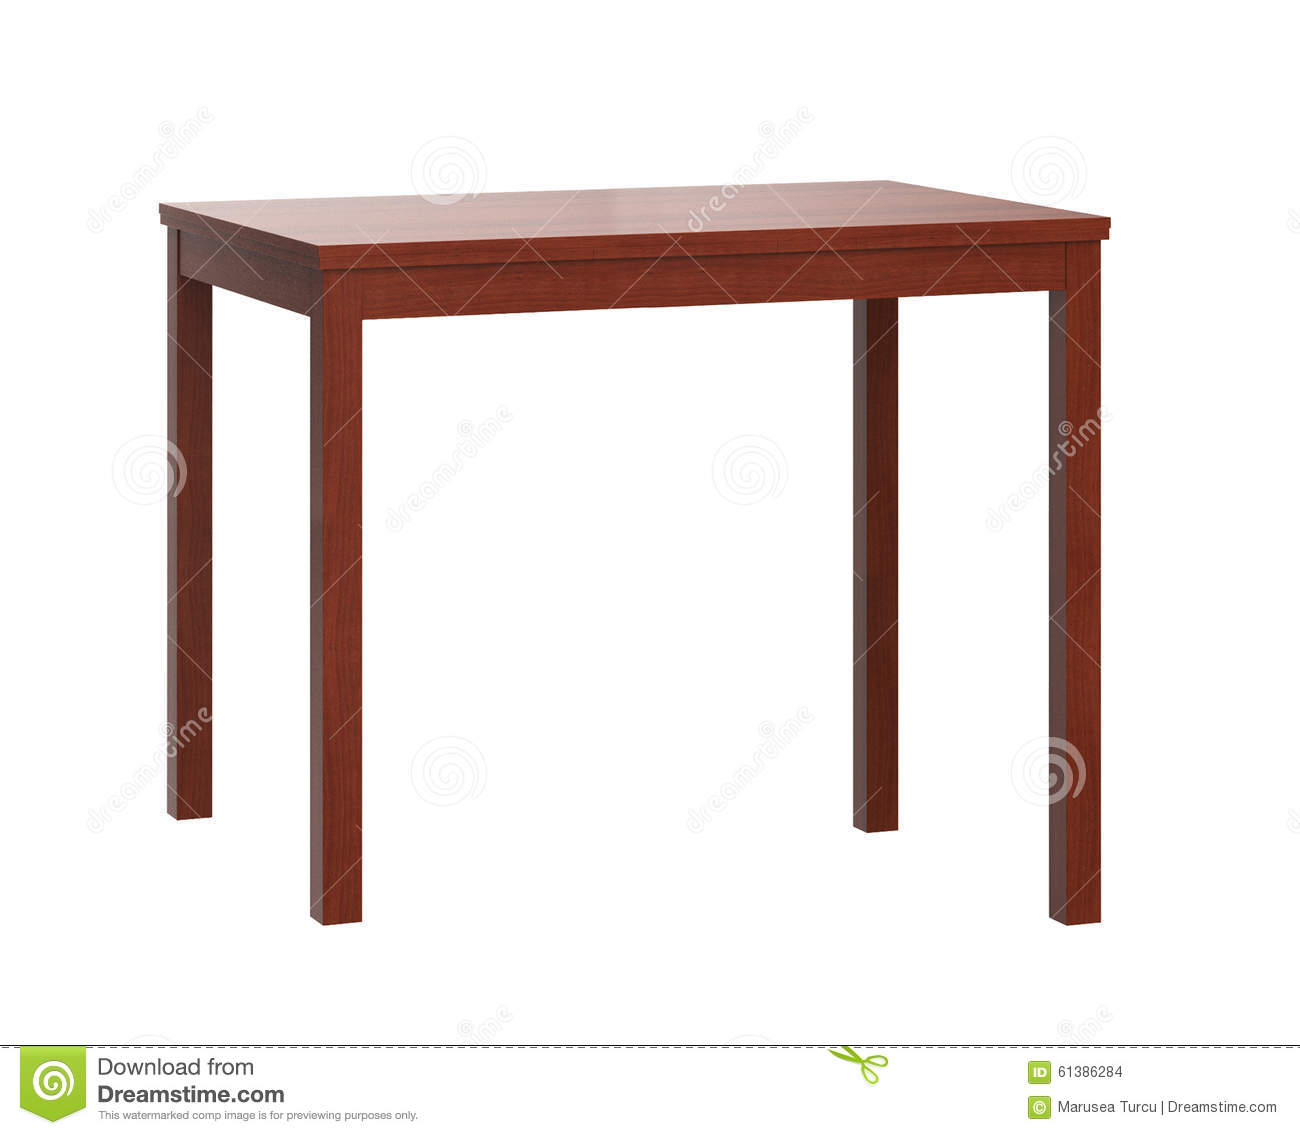 Wooden Table On White Background Stock Photo Image 61386284 : wooden table white background isolated 61386284 from www.dreamstime.com size 1300 x 1135 jpeg 68kB